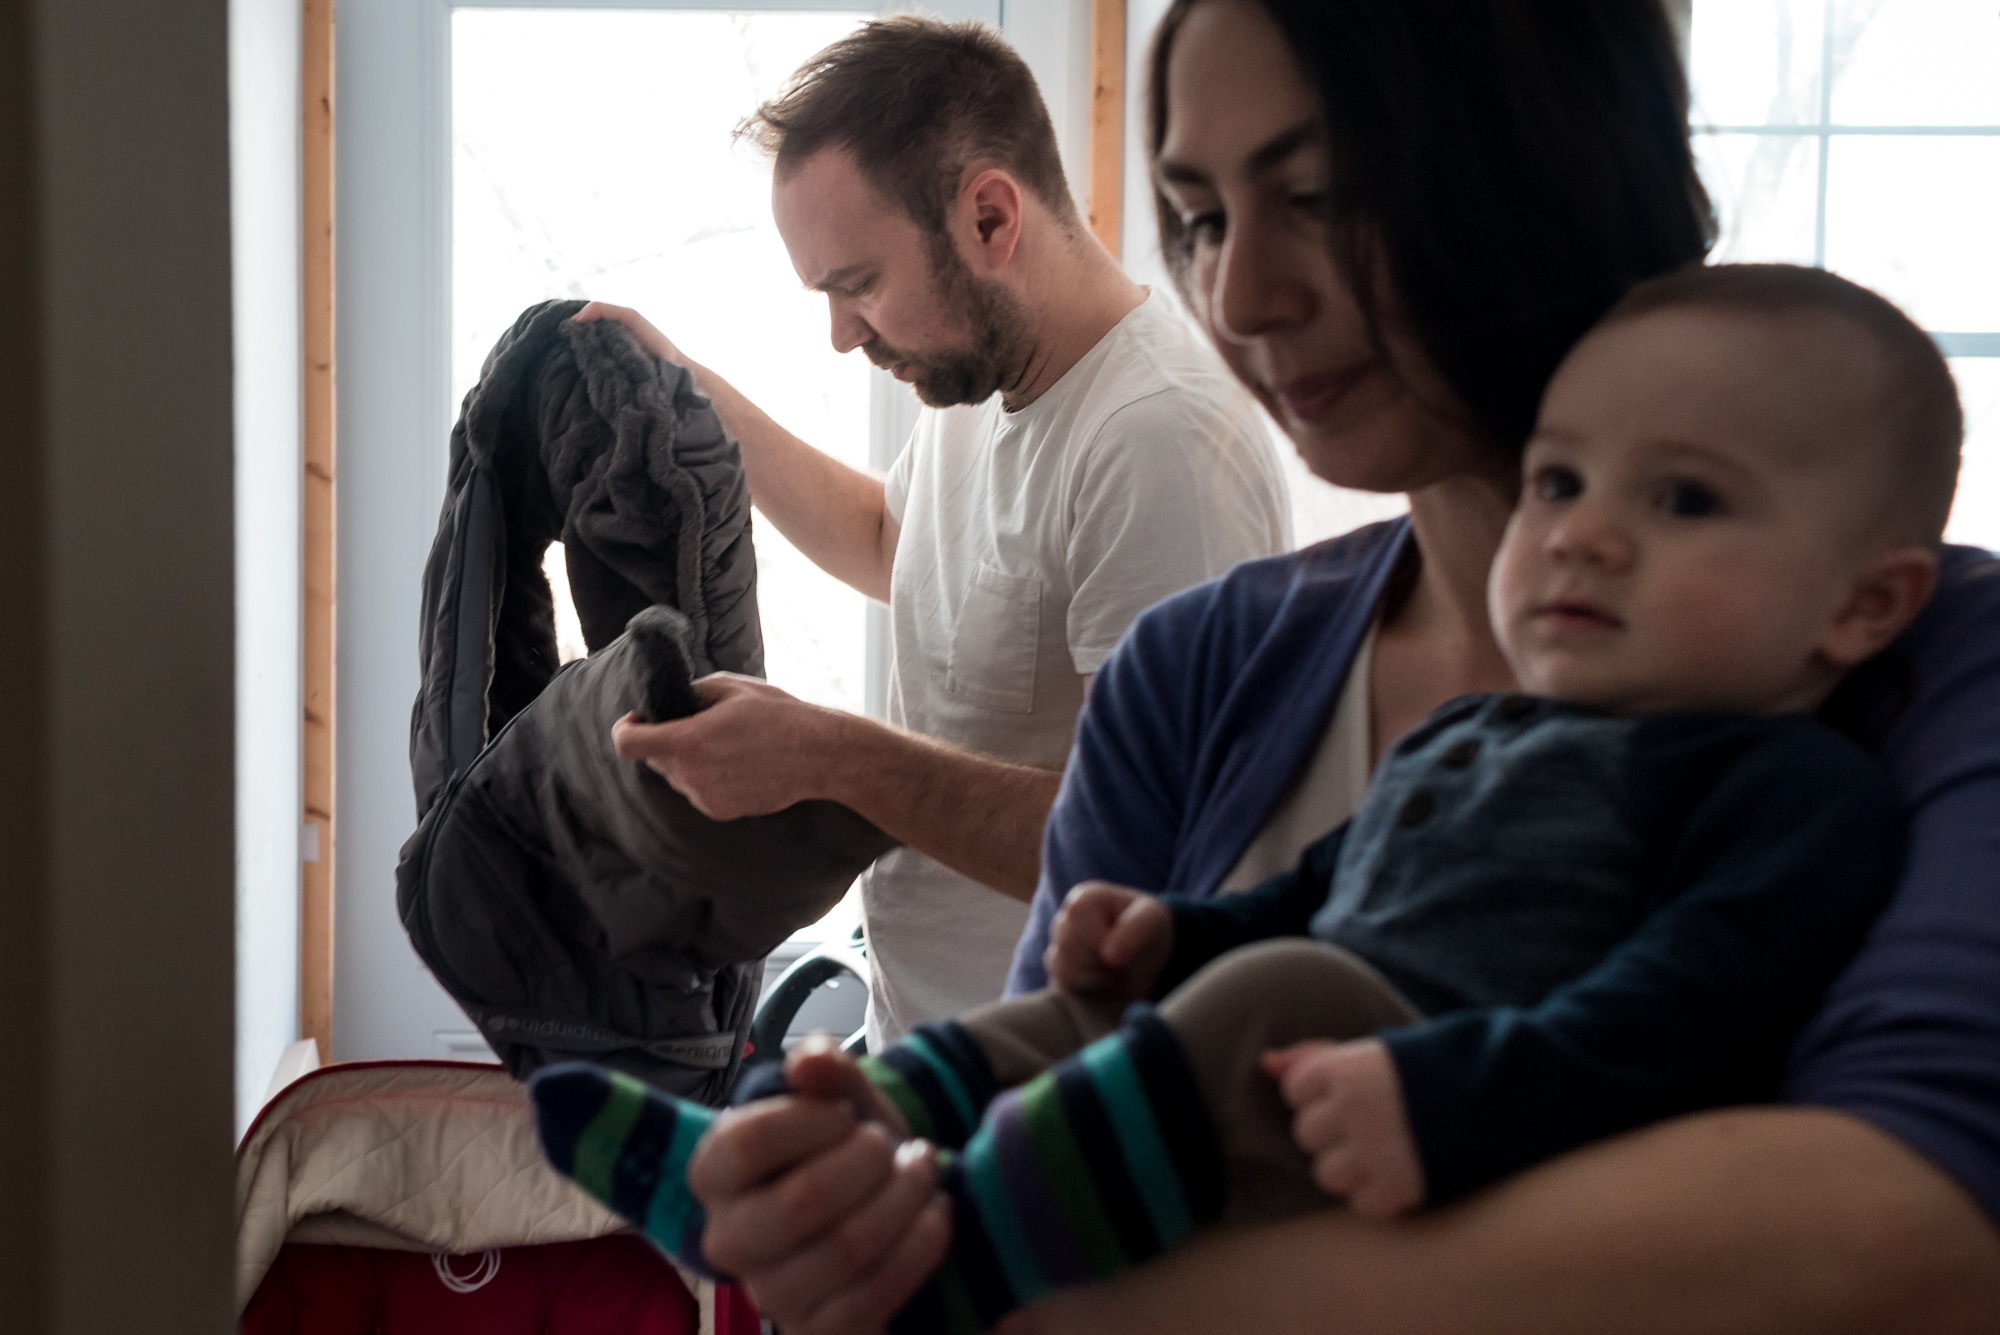 In this series, I reflect on traditional parenting roles by turning my lens on a new family.  Sarah and Fred had their first baby, Elliot, four months ago.  They invited me into their home to photograph them as they went about their day and we spoke about parenthood candidly.  For them, parenting is something they had been longing for for some time.  Although there are challenges, they have embraced their new life as a family with full hearts.